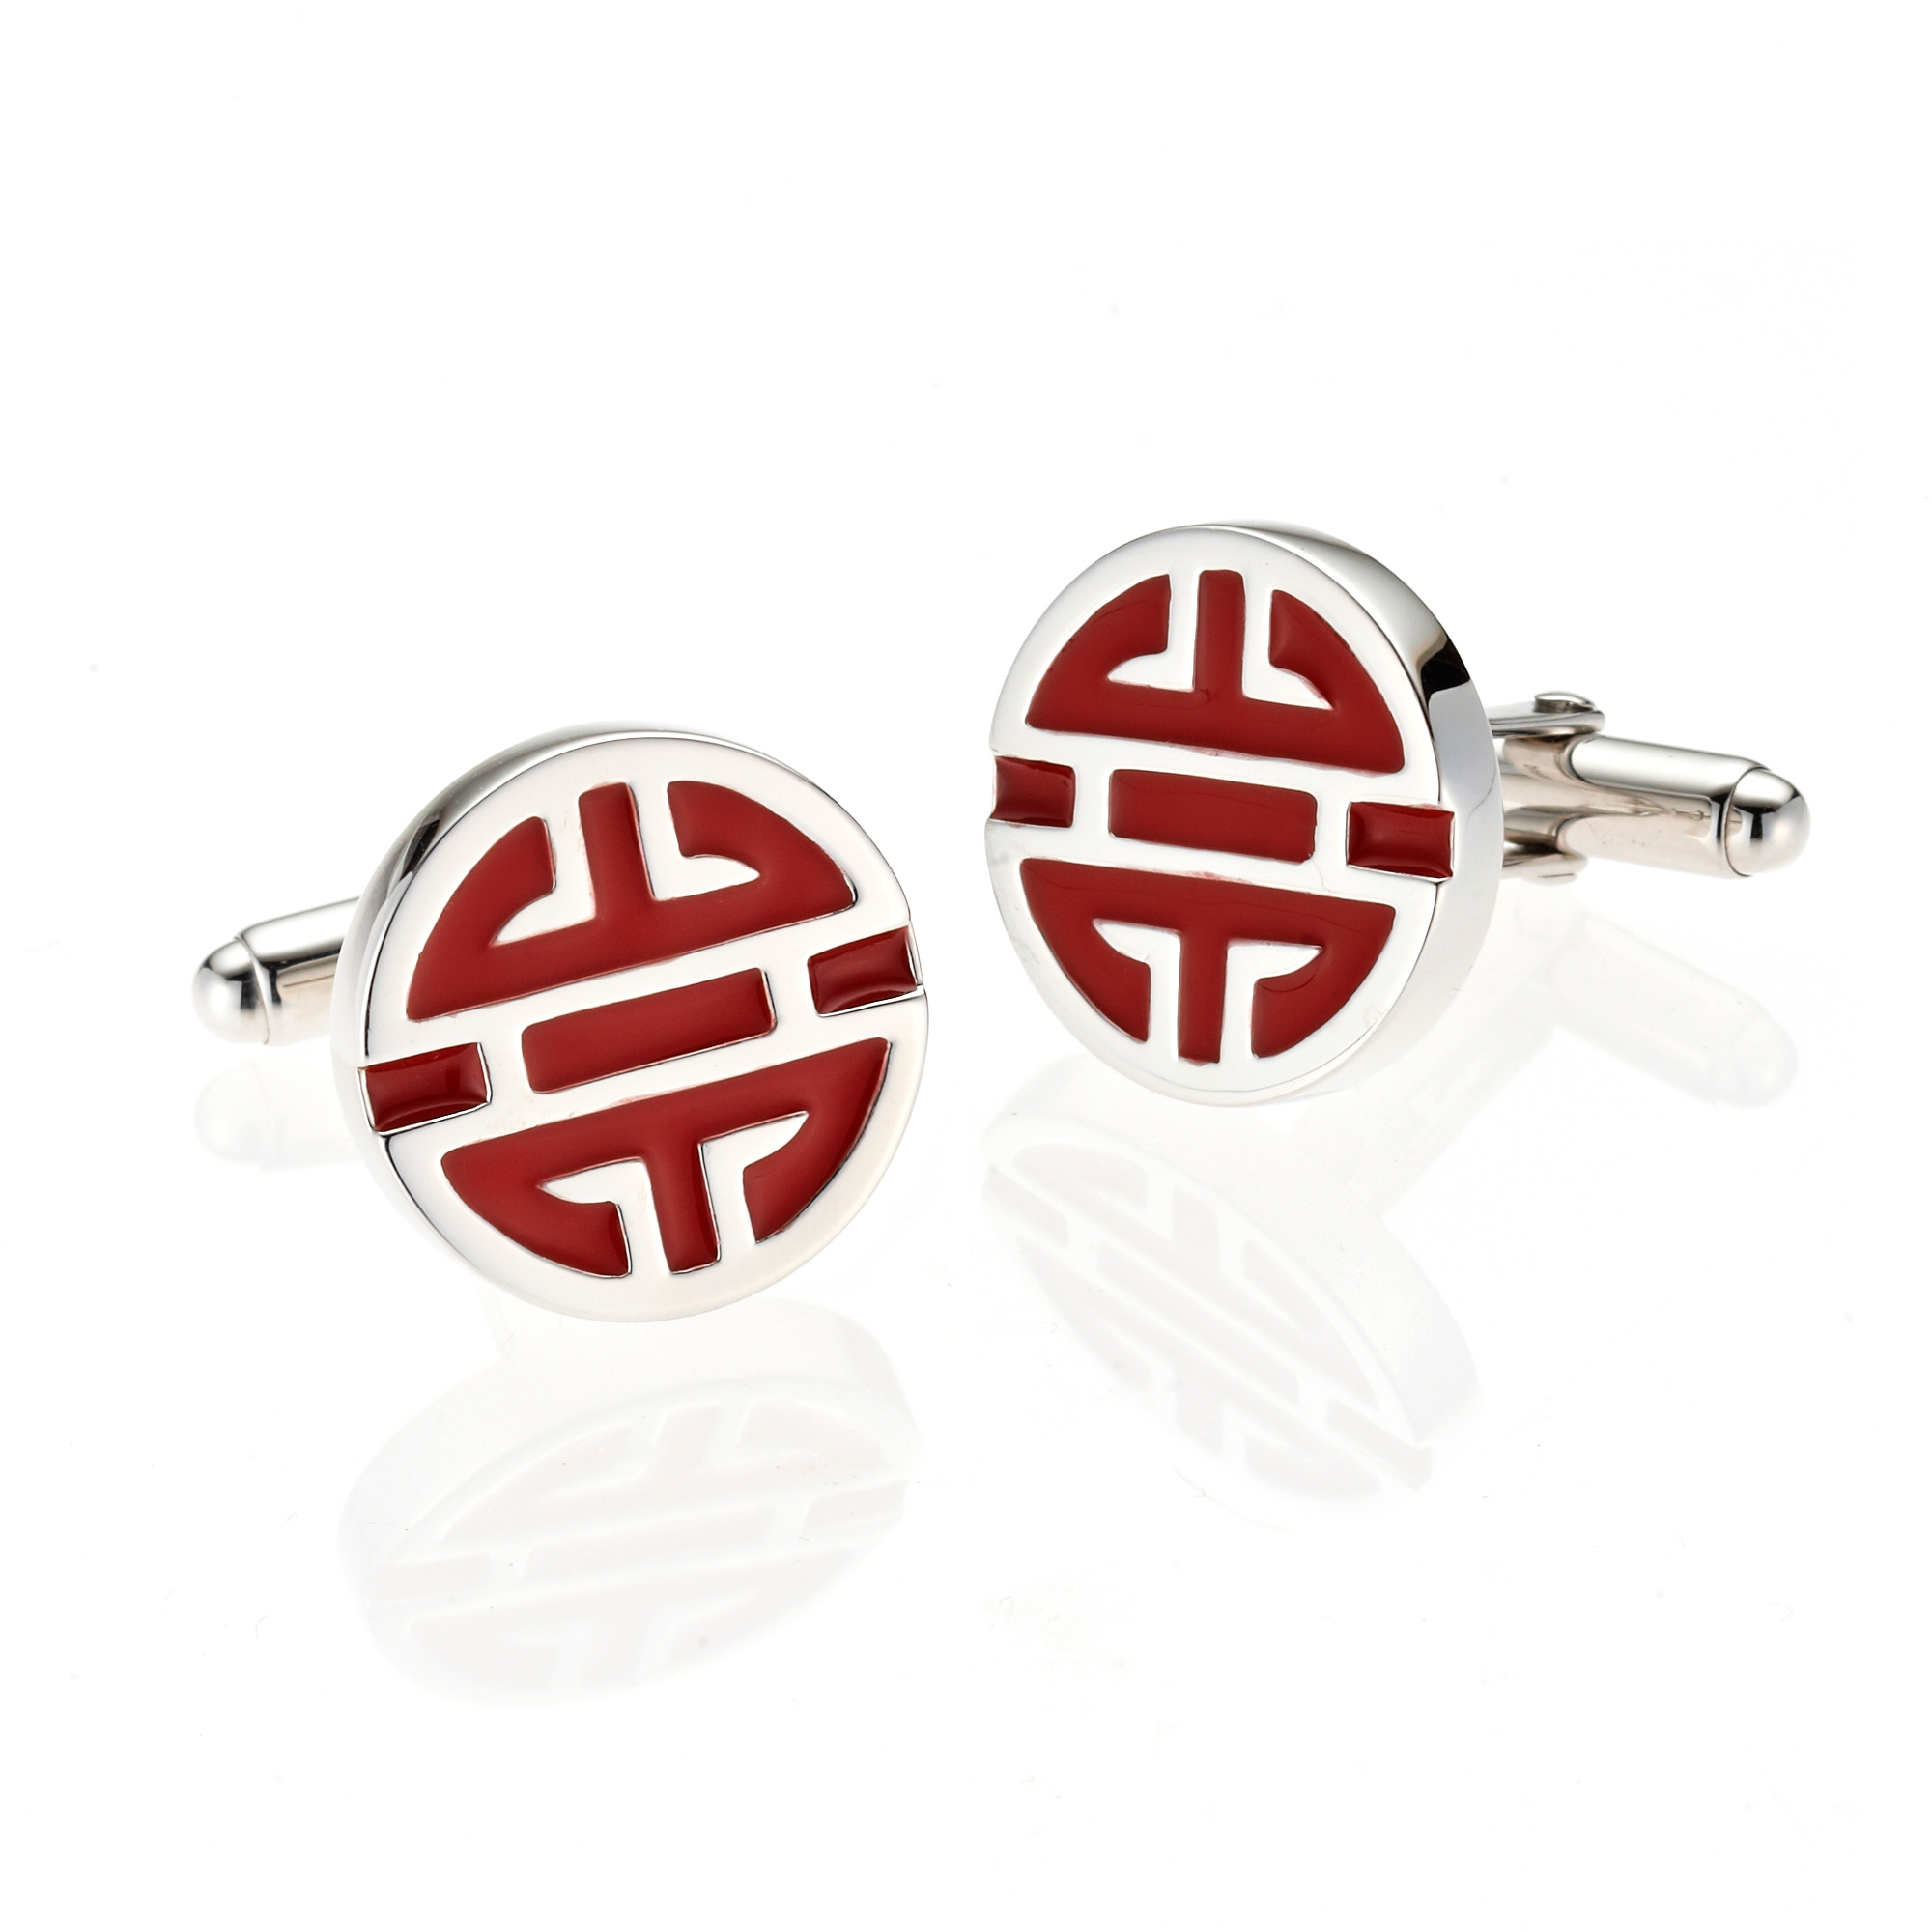 Gump's Shou Red Enamel Cufflinks